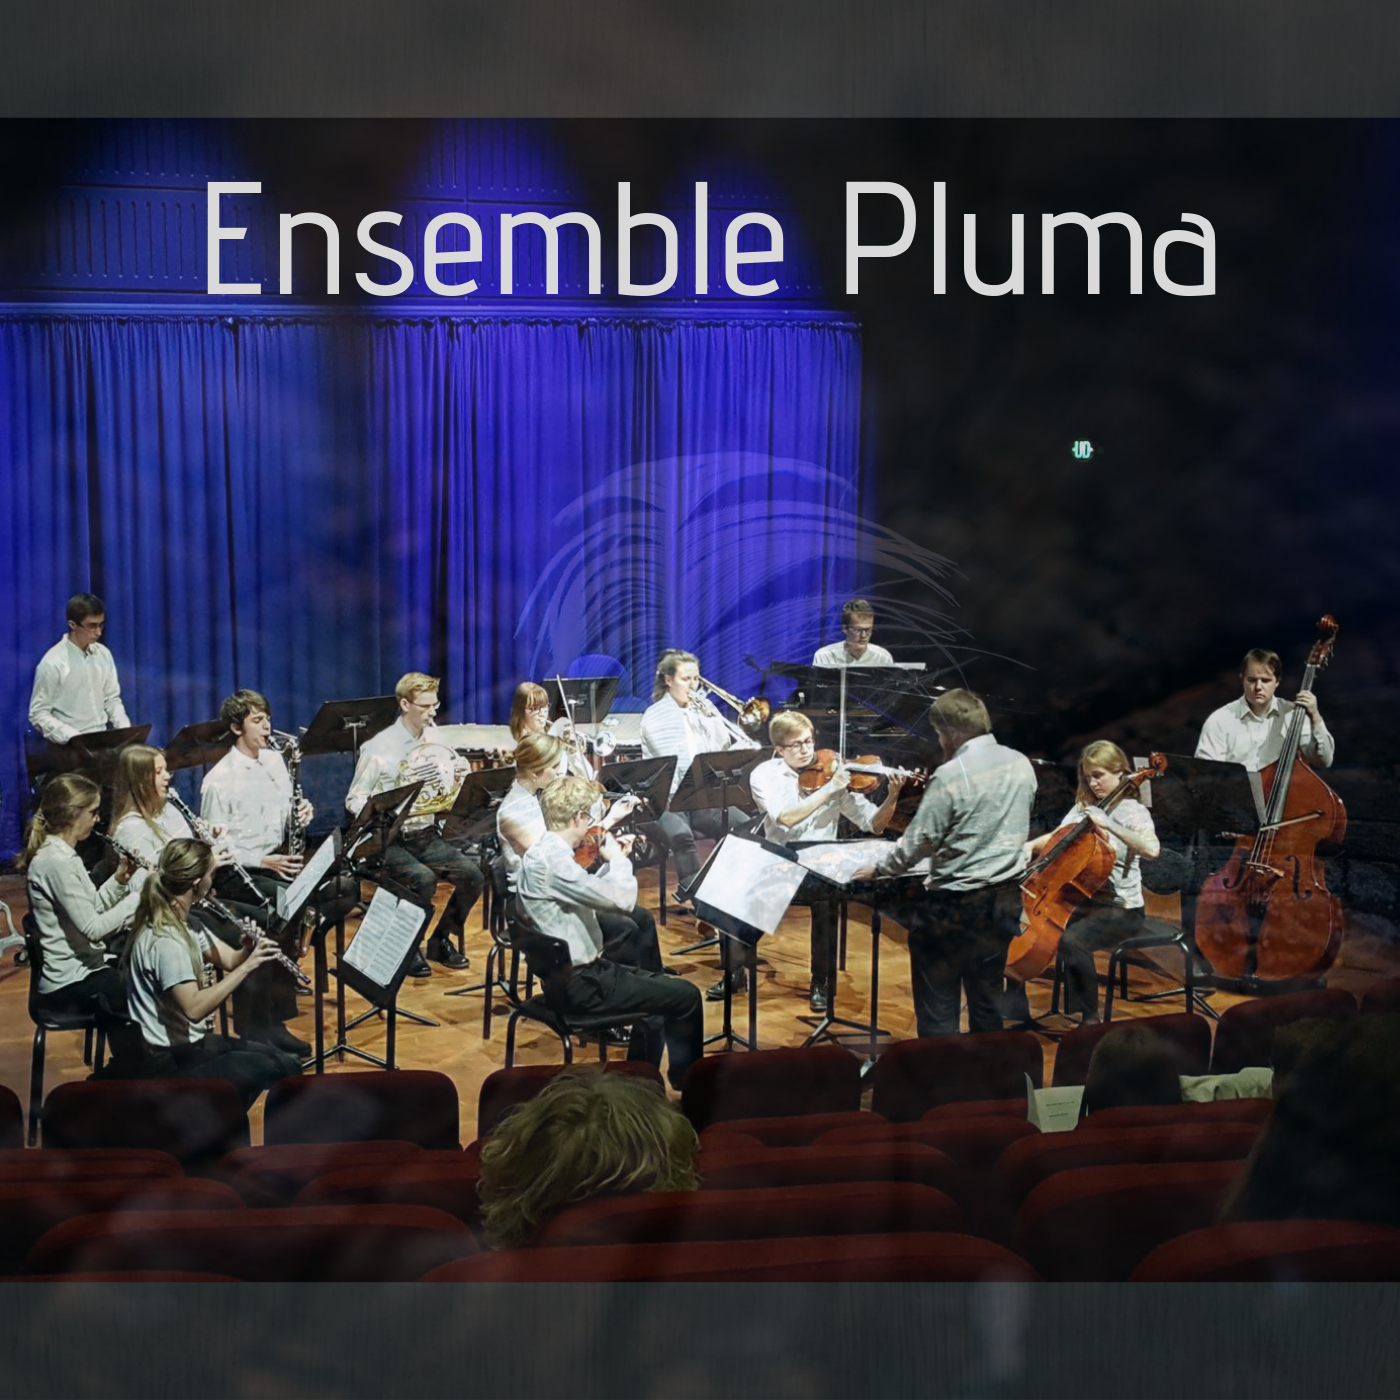 ensemble pluma - TIME: 16:00STAGE: SYMFONISK SALVIEW PROGRAM